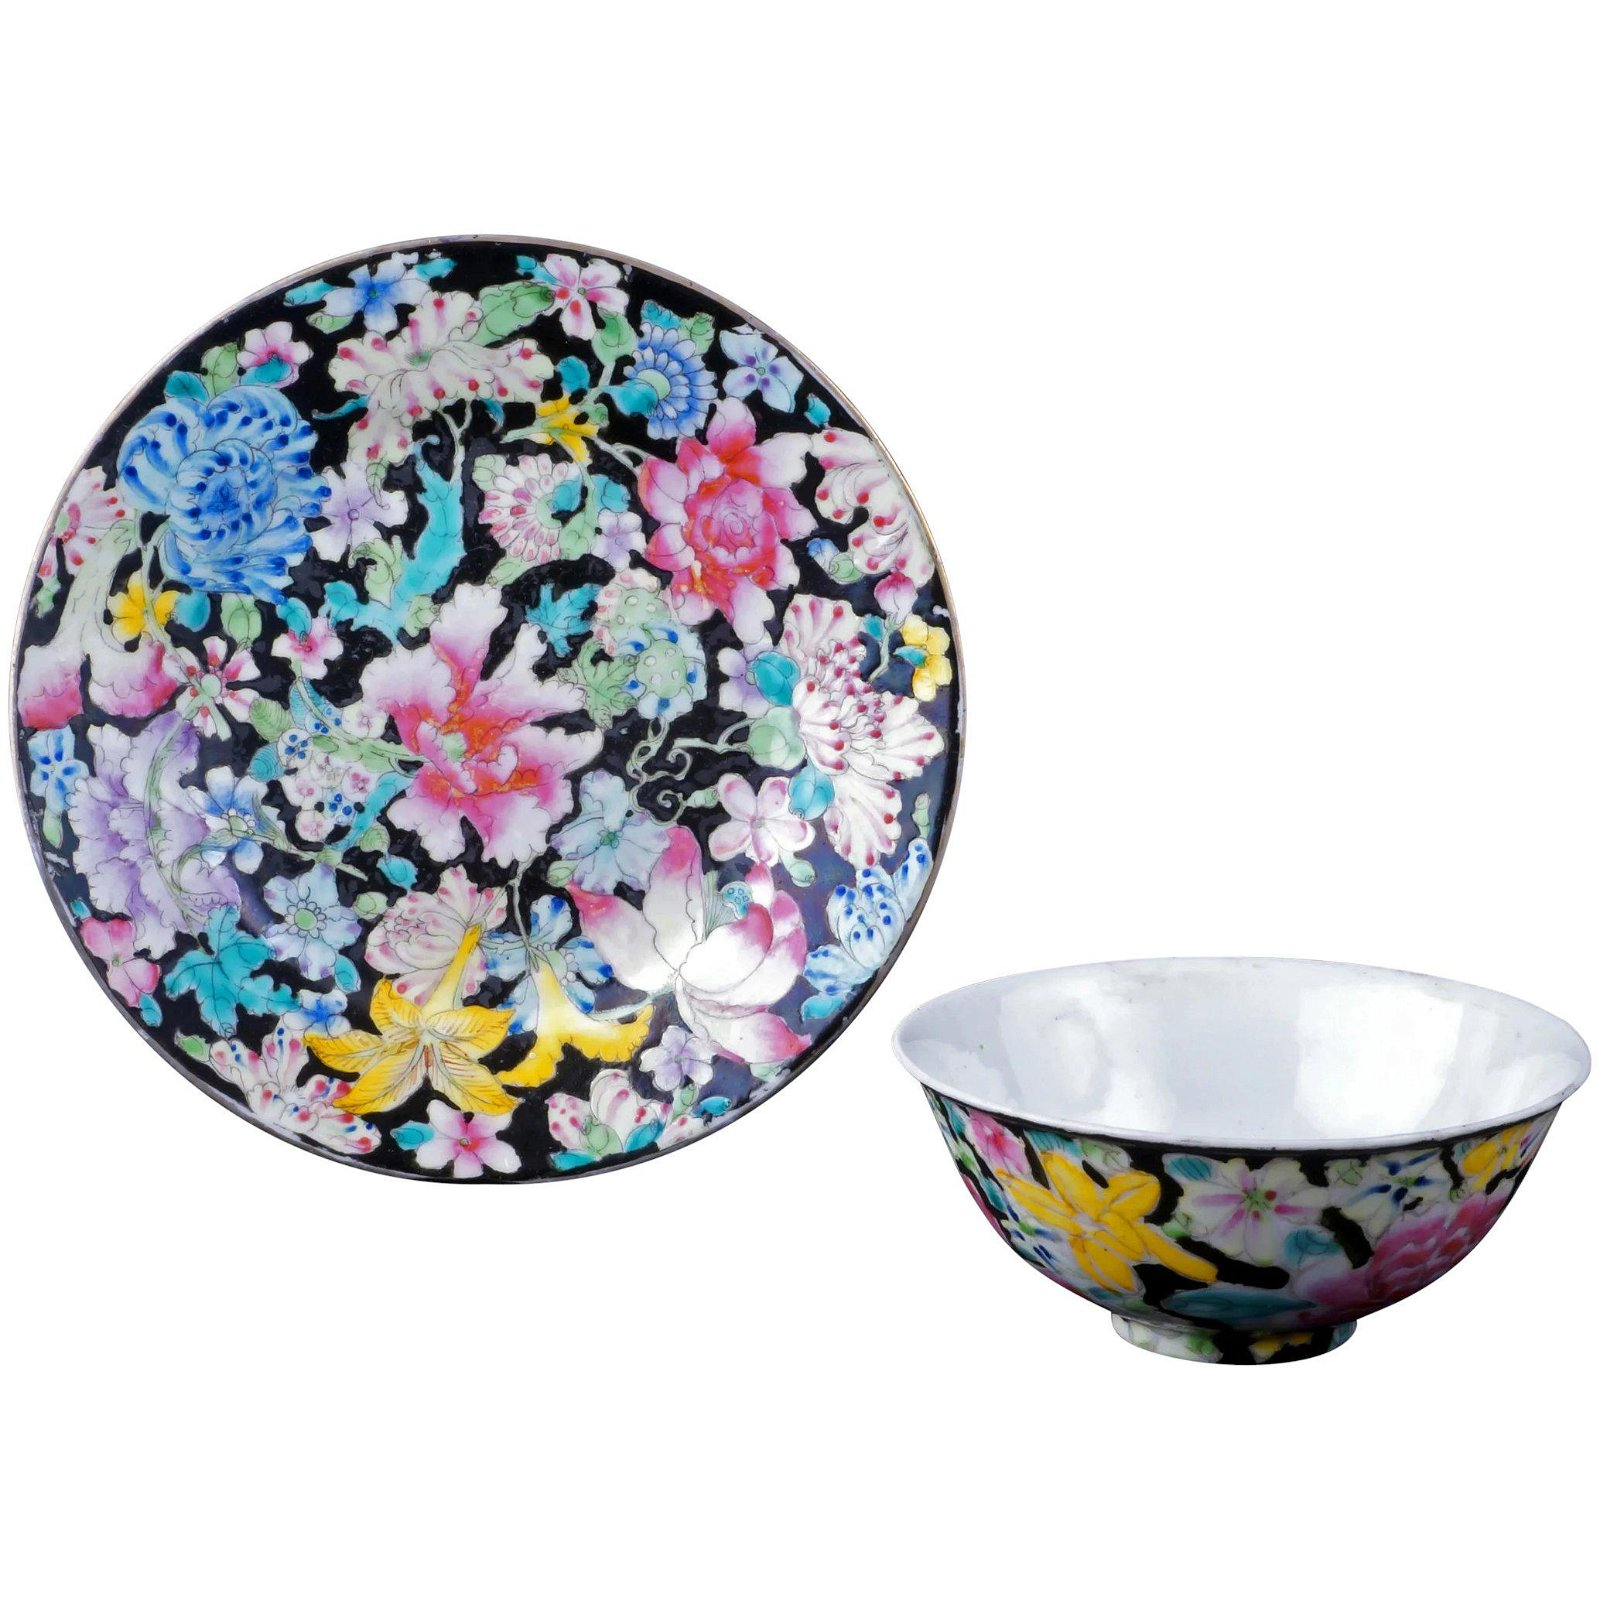 Chinese Republic Thousand flower bowl and plate